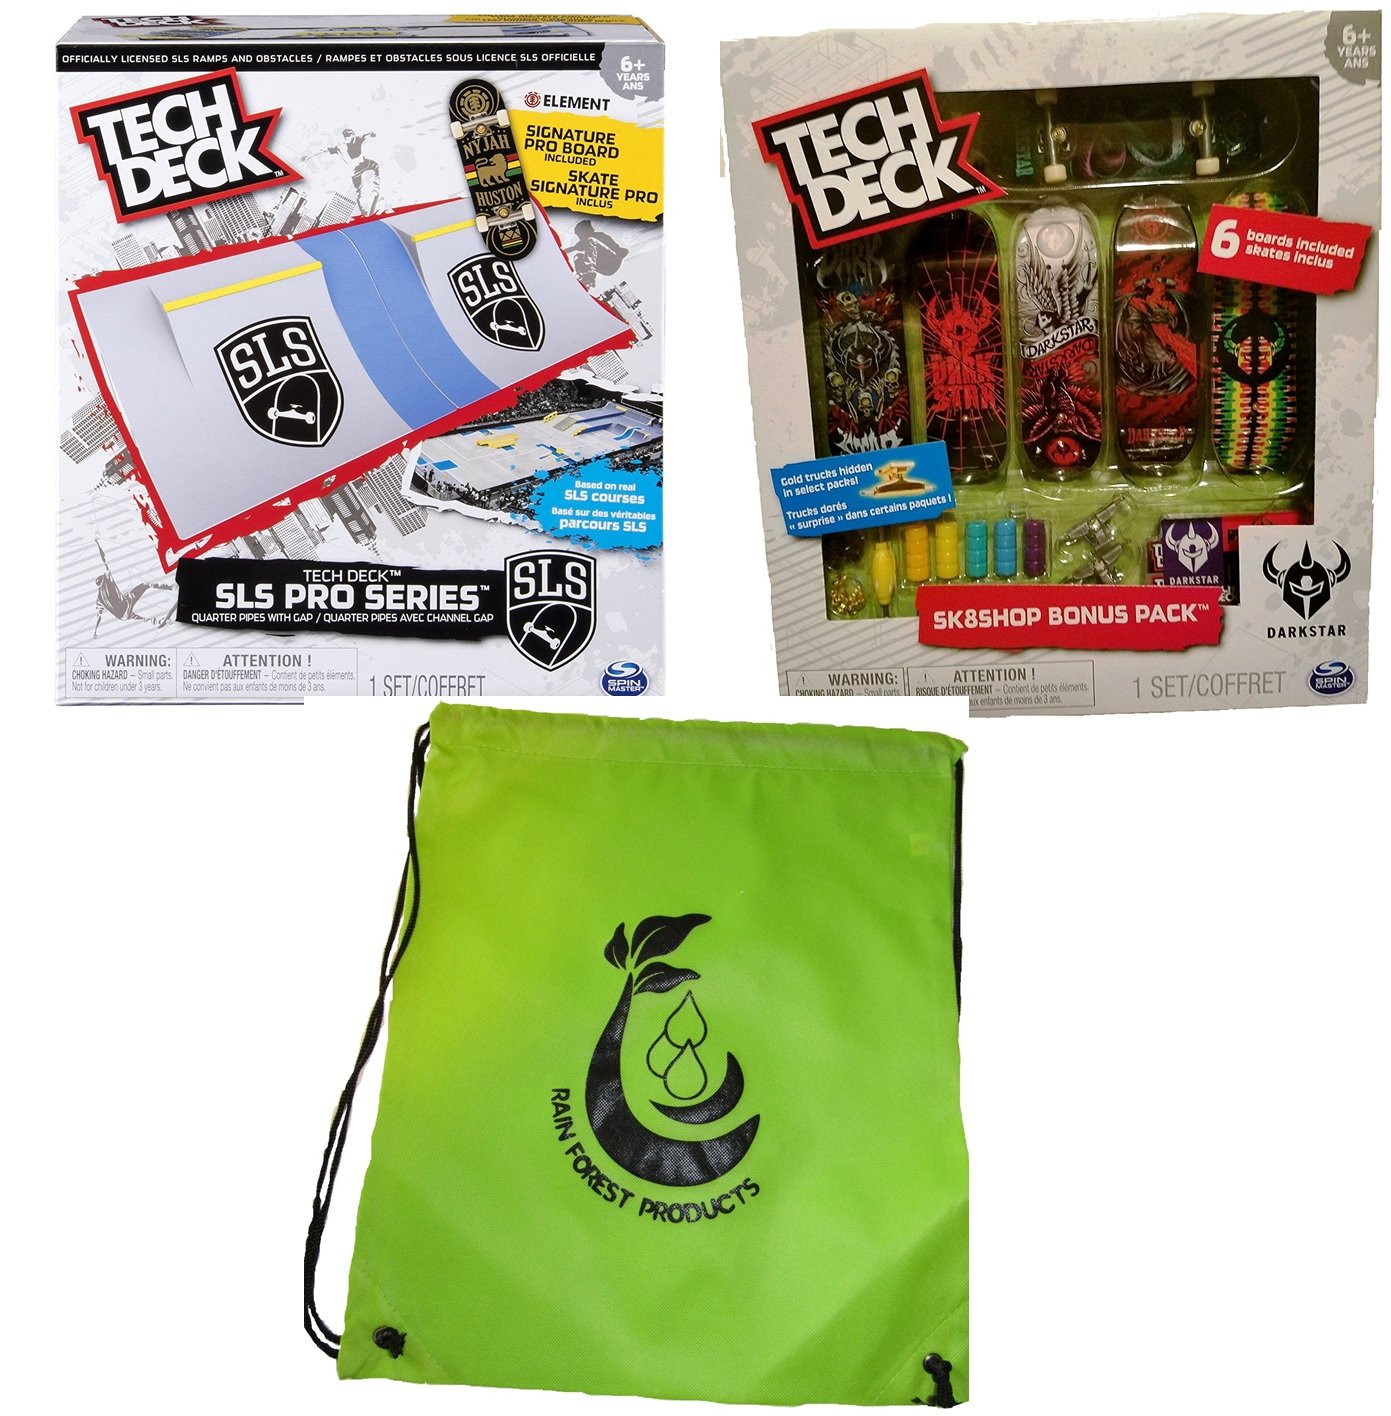 Tech Deck Bundle SLS Pro Series Skate Park Quarter Pipes, Sk8shop Bonus Pack (Style may vary) and bag by Spin Master